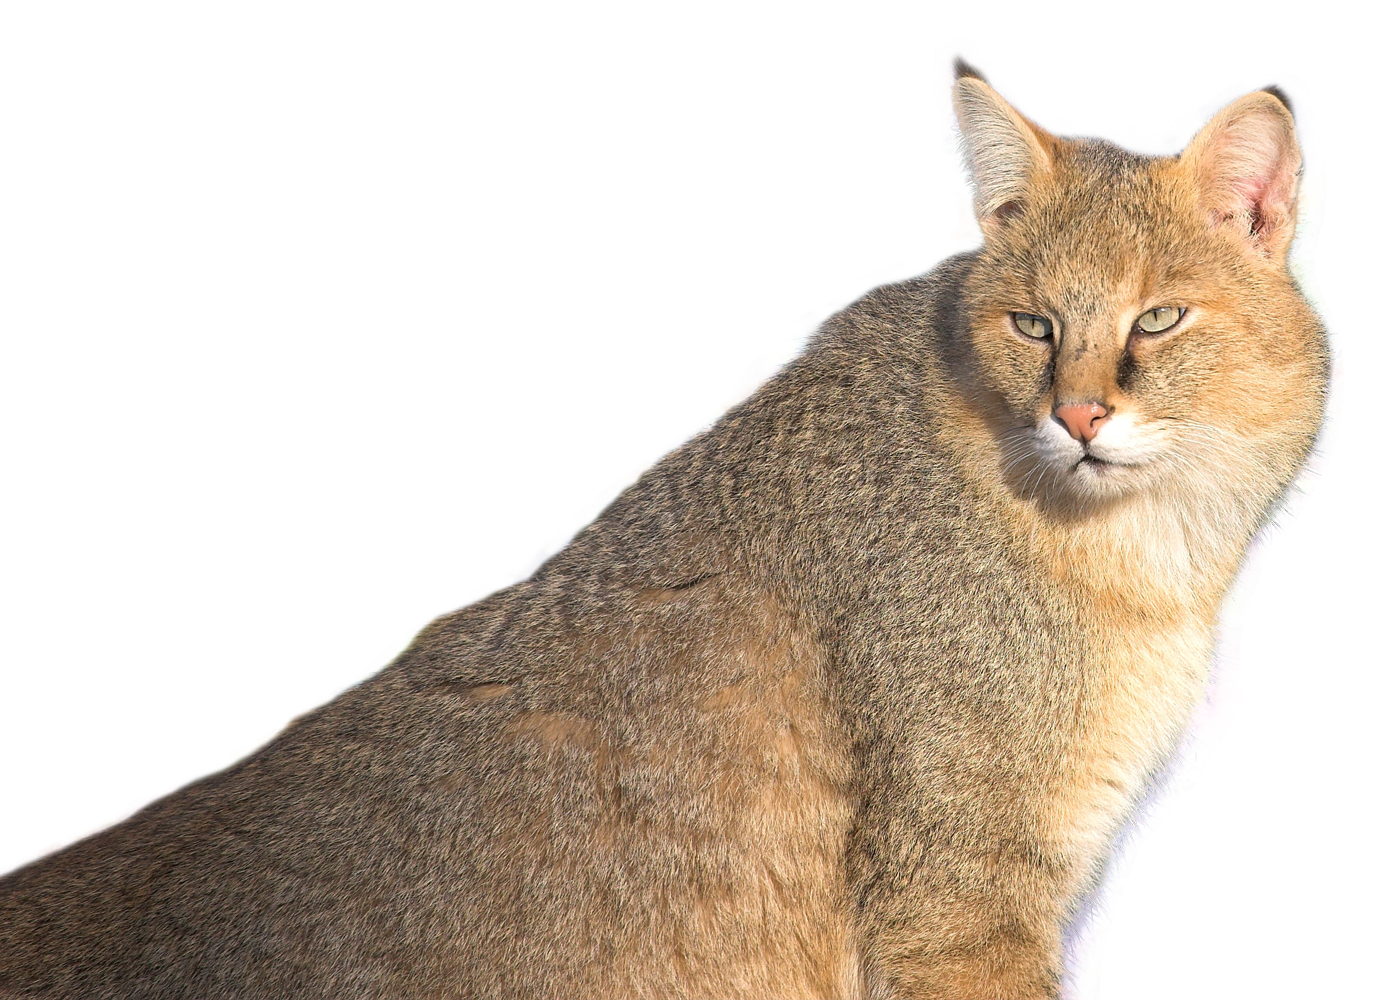 Jungle Cat PNG Image.